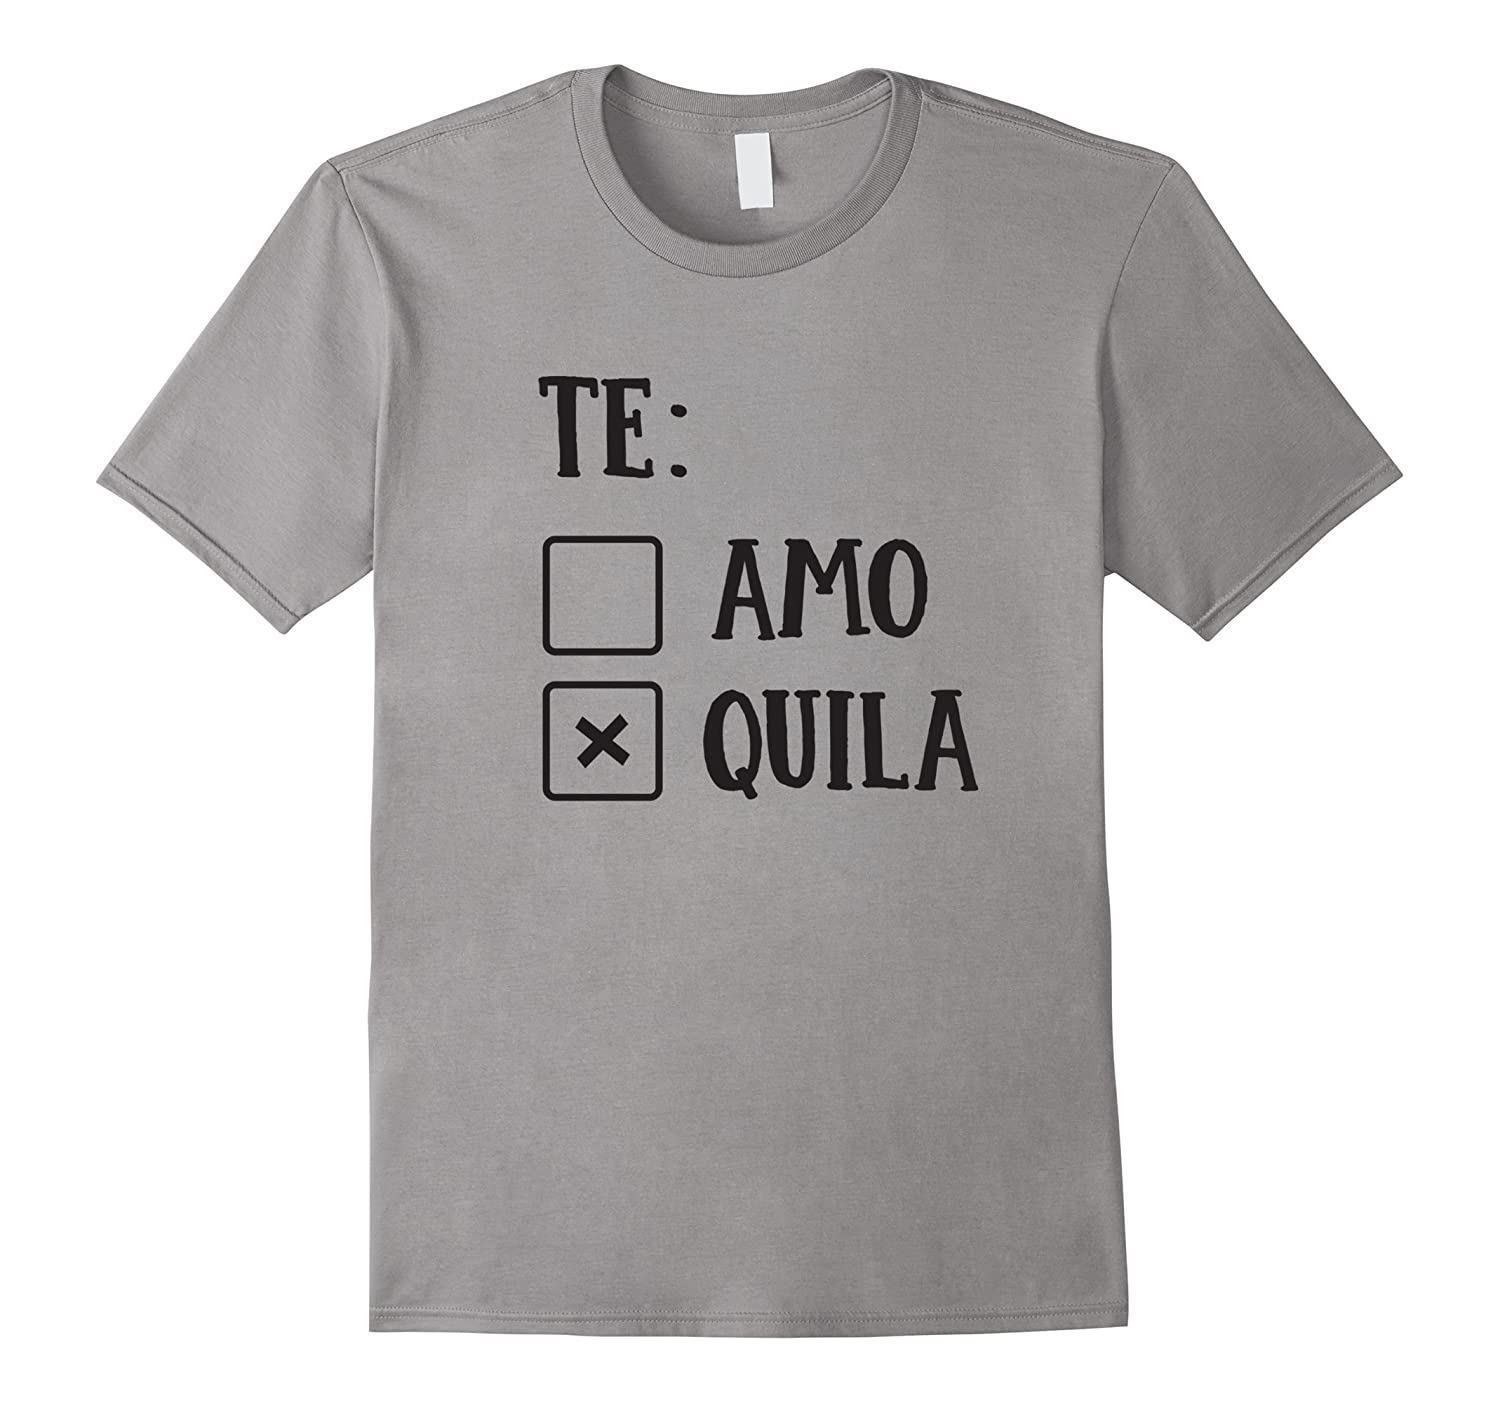 TE Amo or Quila Cool T-Shirt Tequila Alcohol Tshirt Party-Vaci